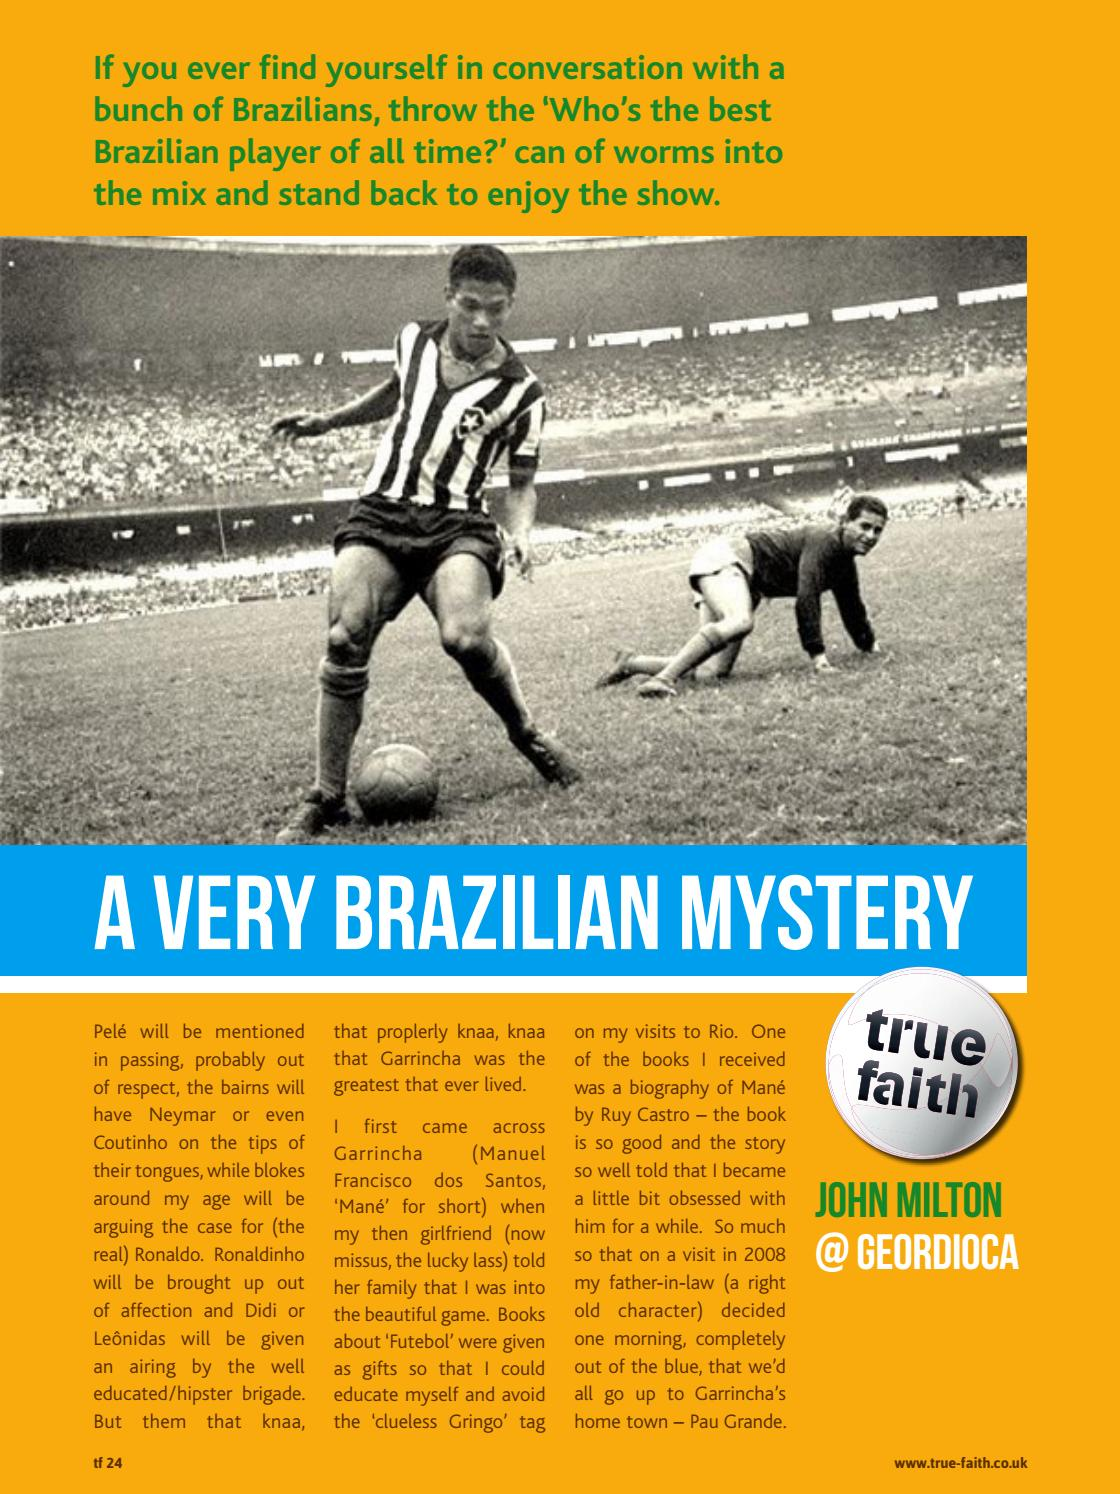 True faith 136 by true faith - NEWCASTLE UNITED FANZINE - issuu